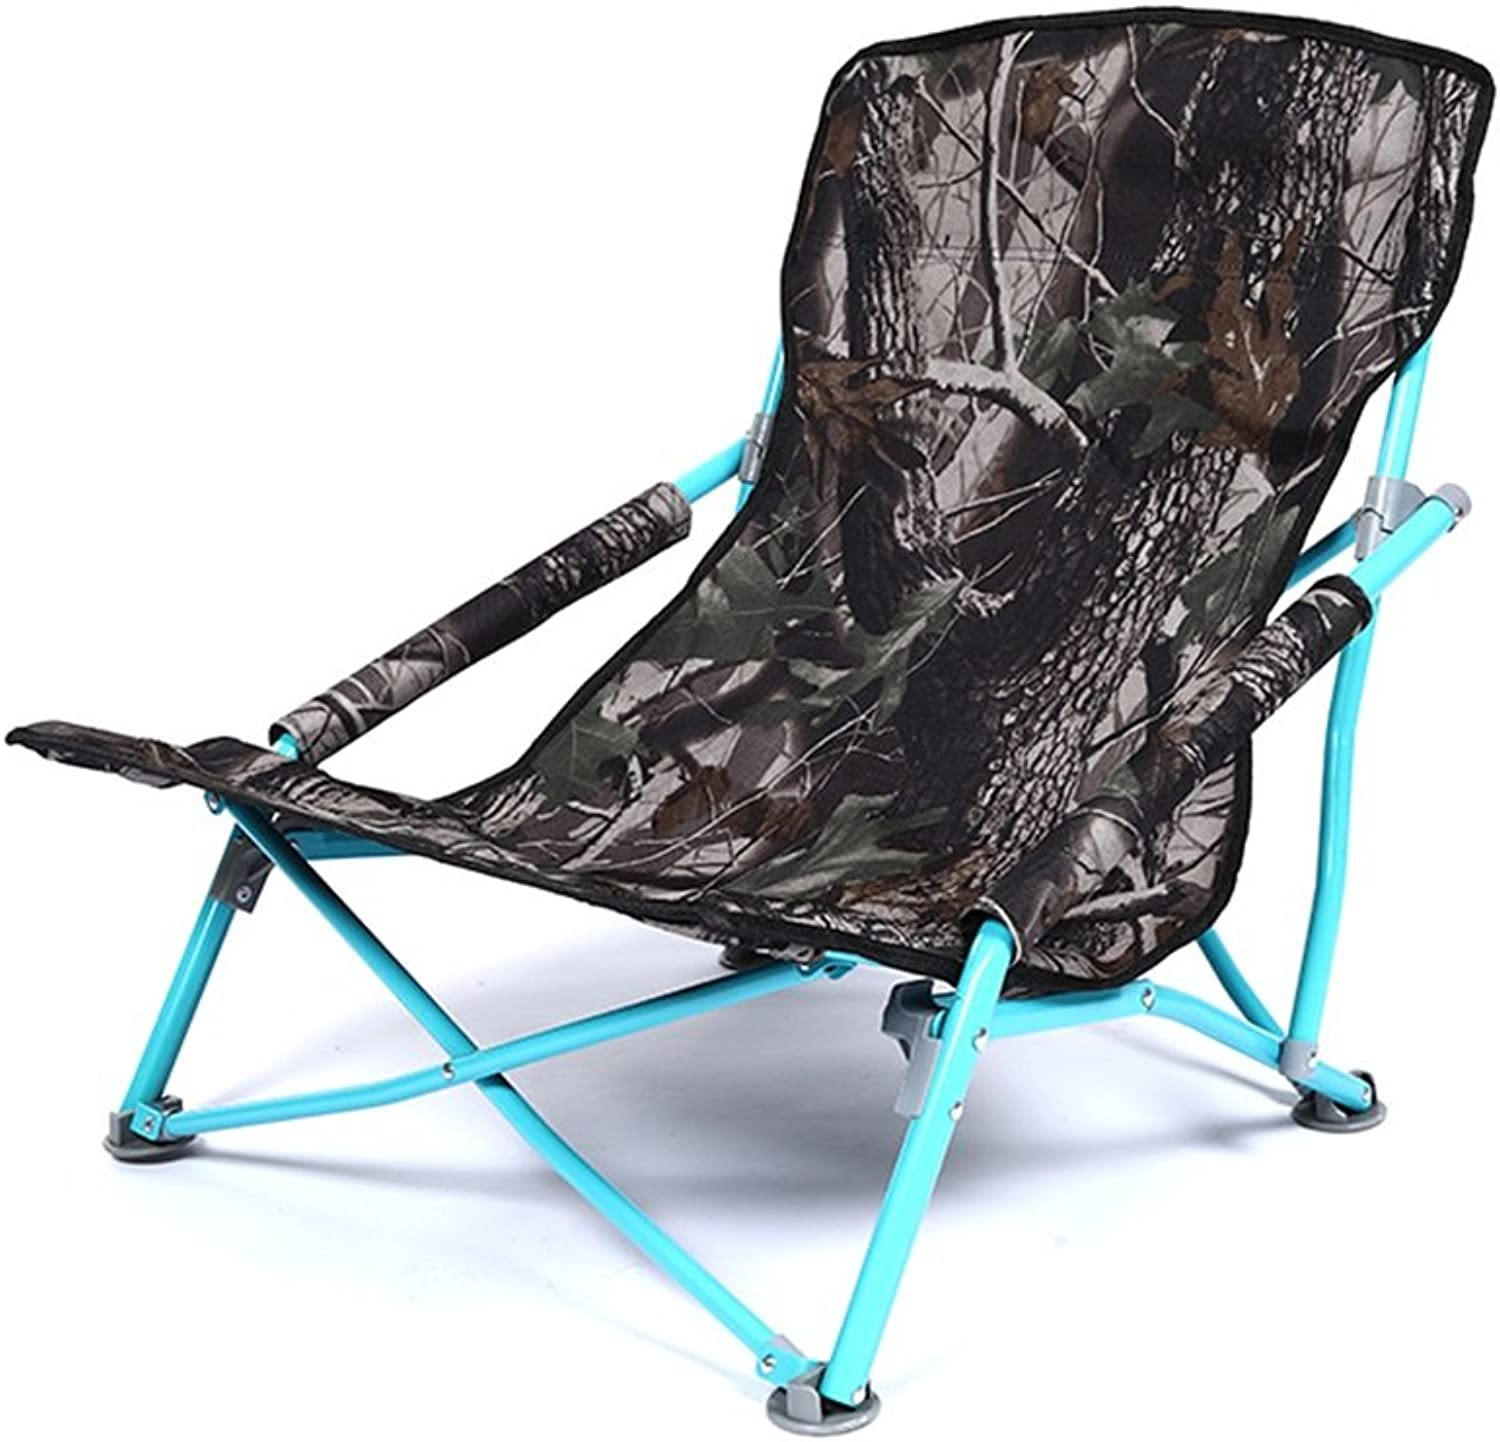 Collapsible Stools with Backrest Folding Seat Beach Chair Low Footstool with Armrest Ultralight Ergonomic Fishing Chair Portable Solid Practical Leisure